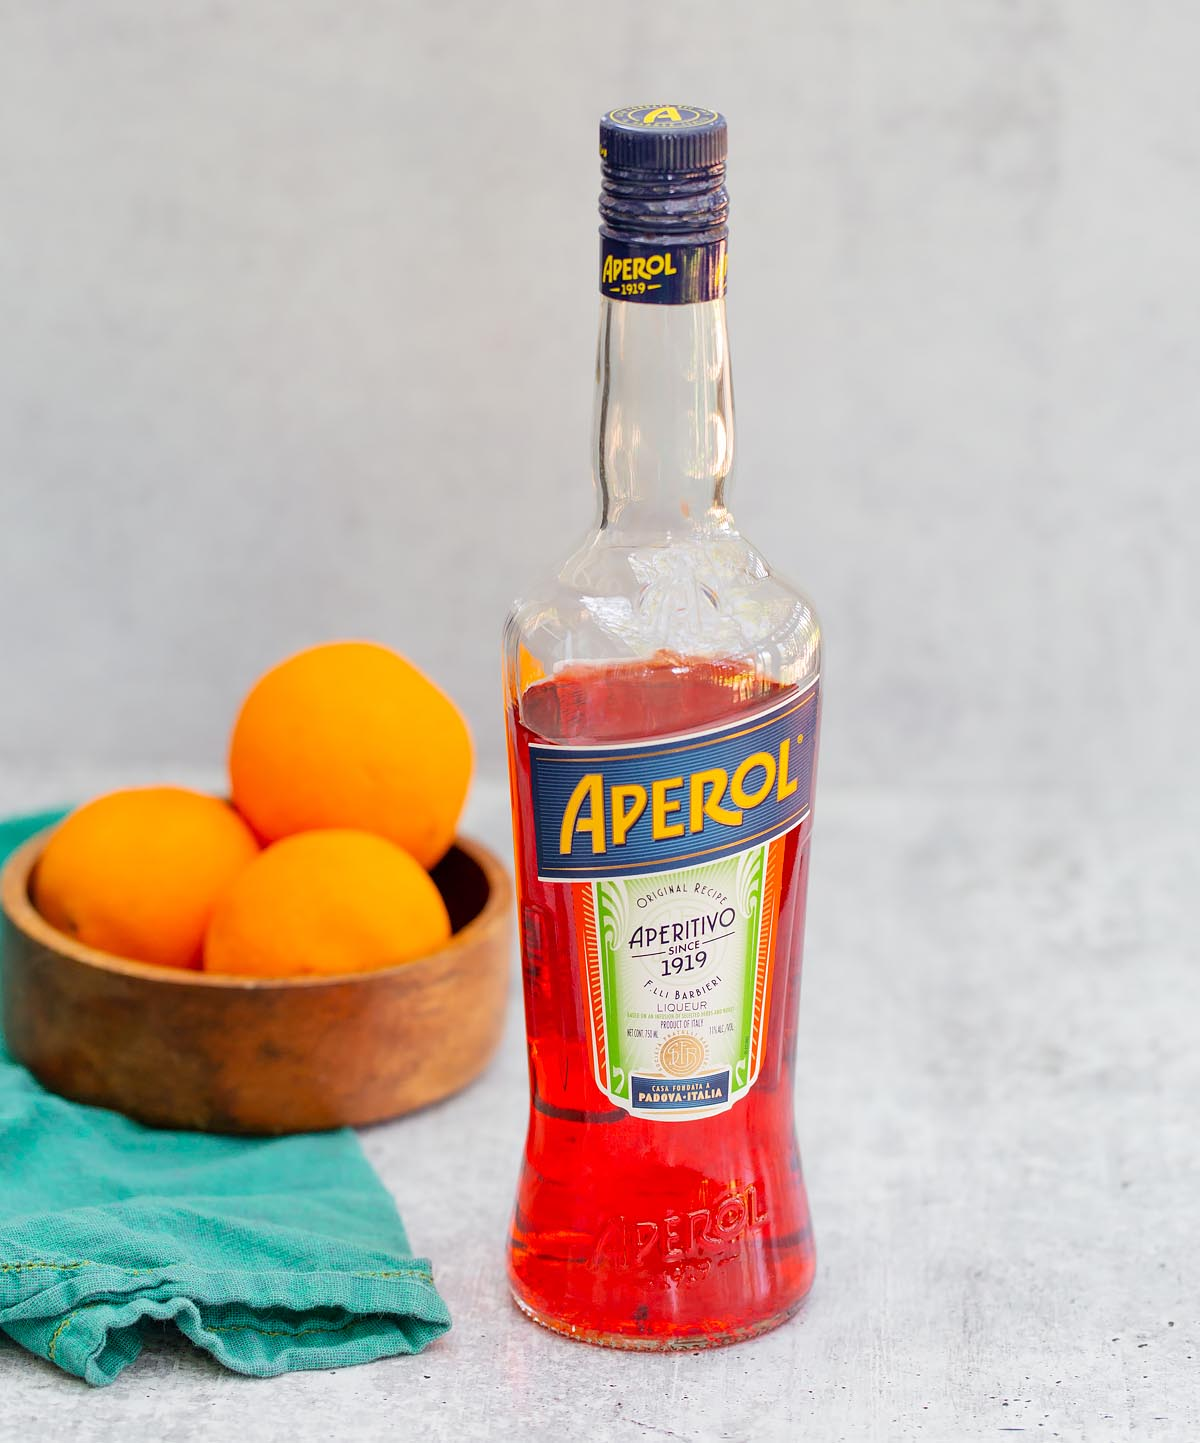 a bottle of aperol with a bowl of oranges in the background